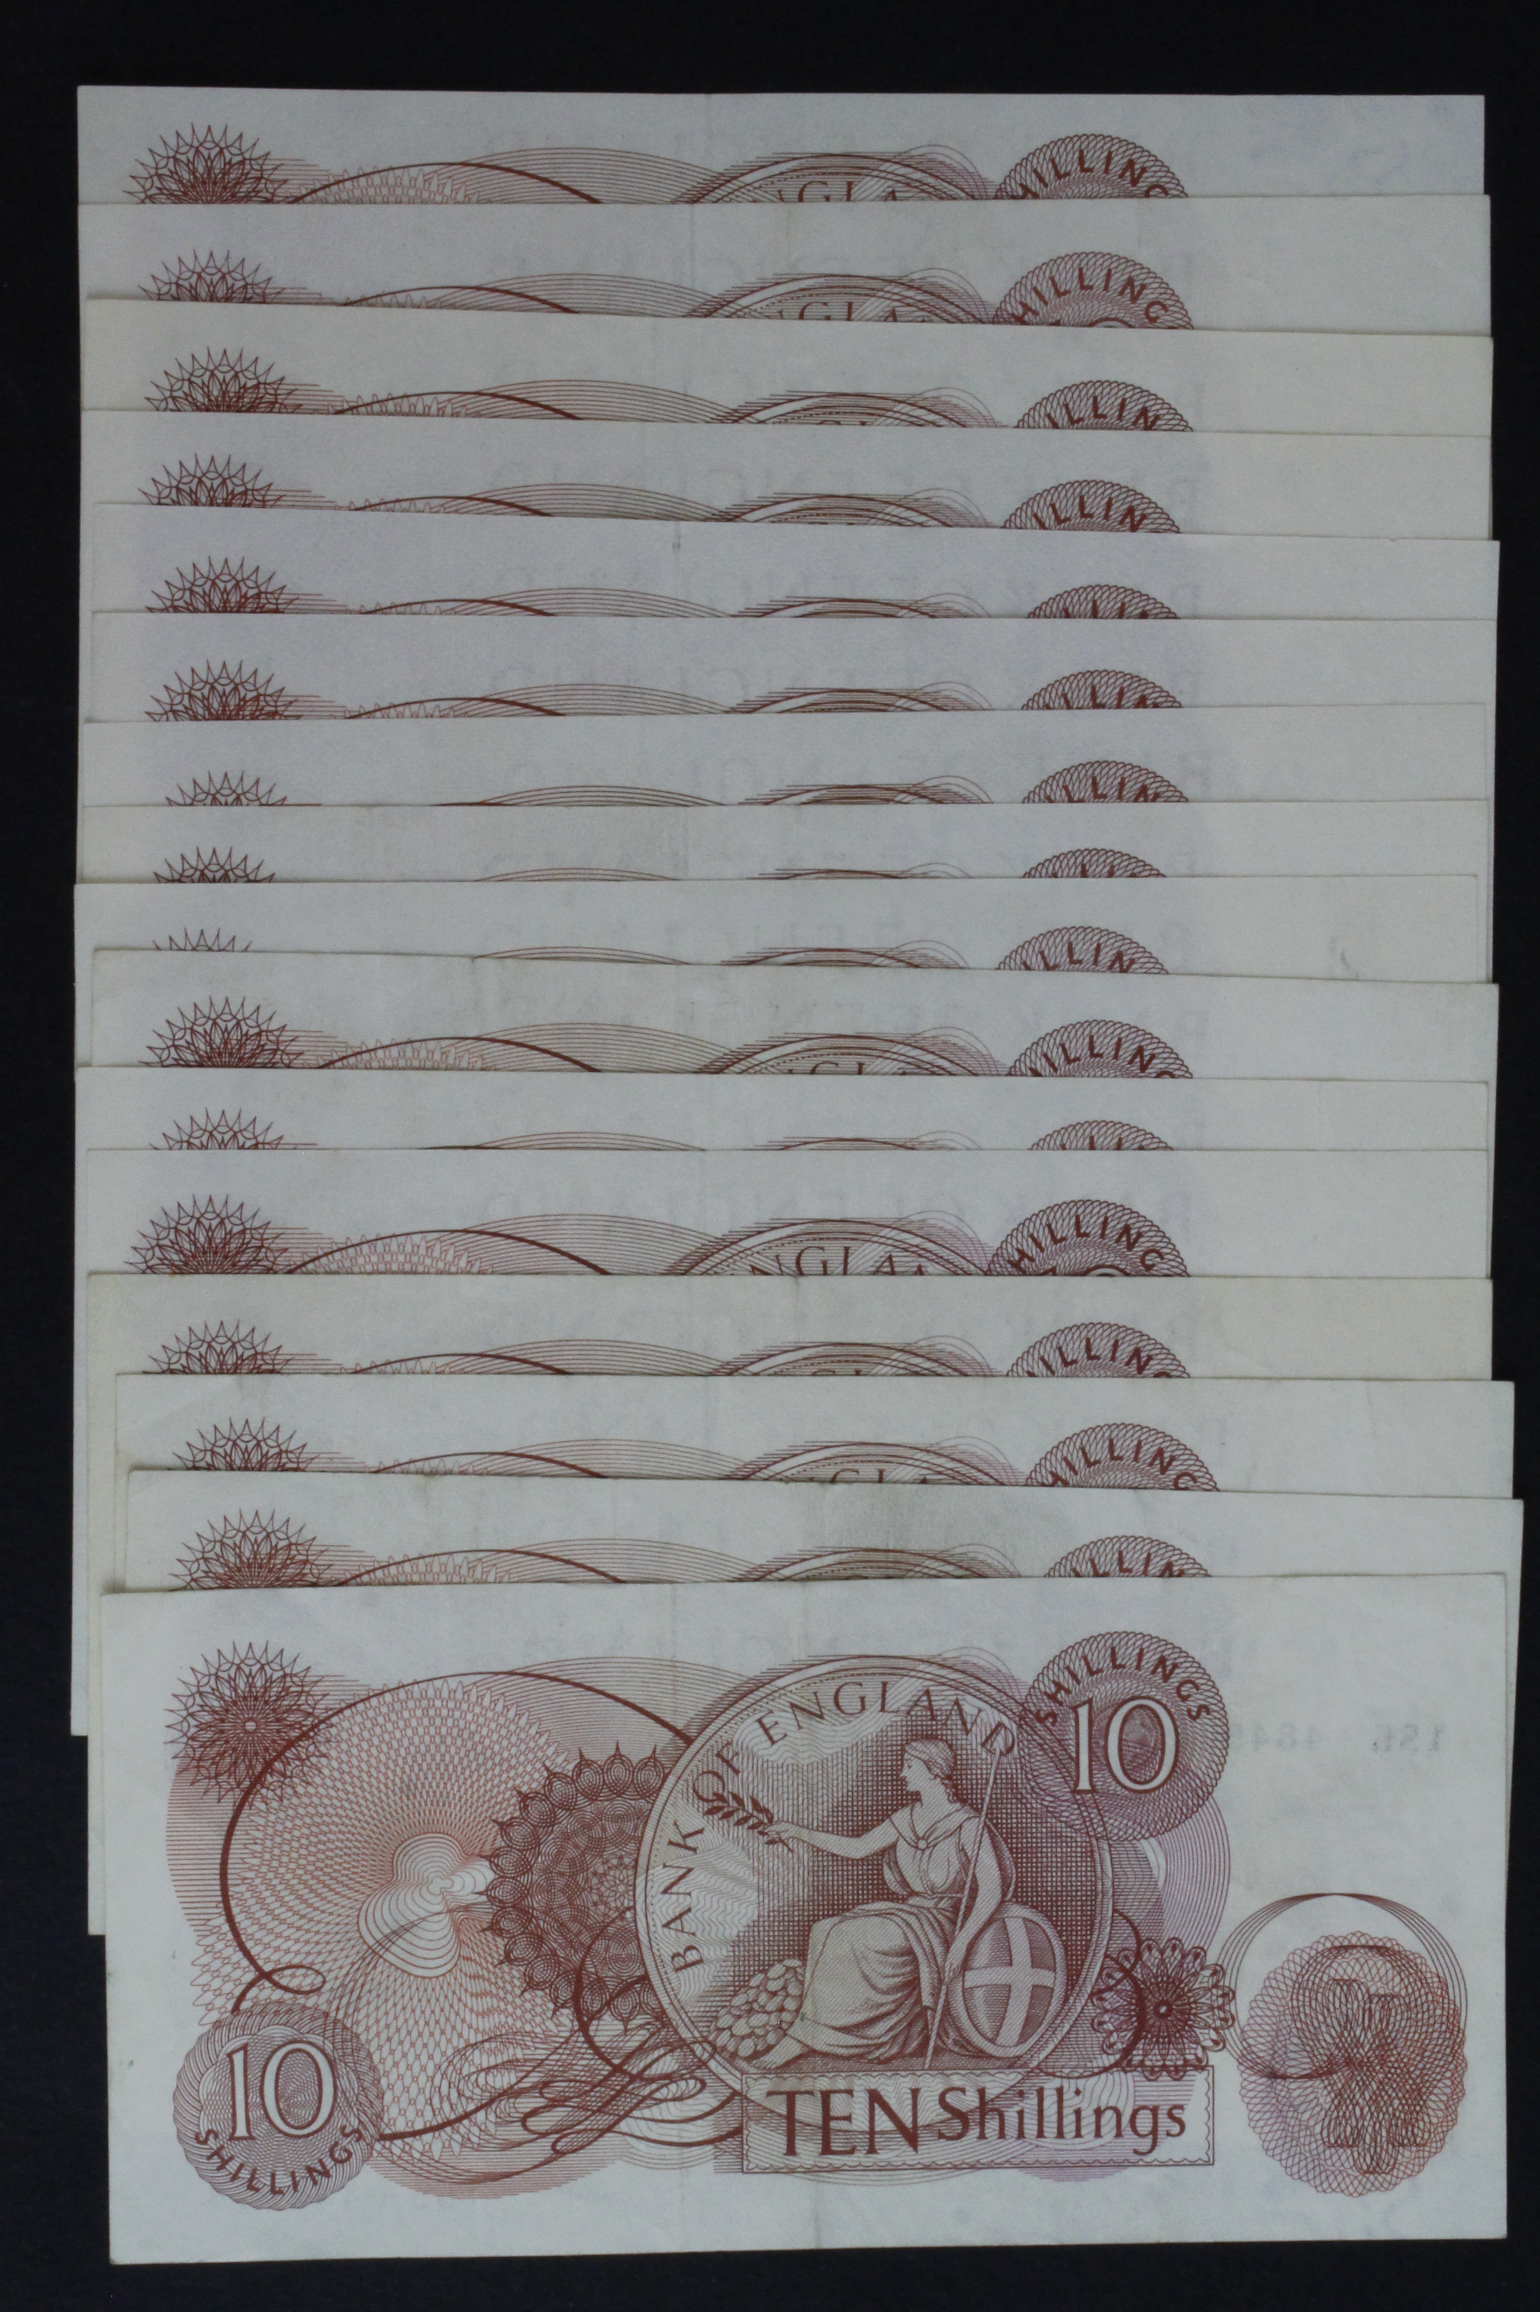 Hollom & Fforde 10 Shillings (16), a collection of series C Portrait notes, Hollom (9) issued - Image 2 of 2